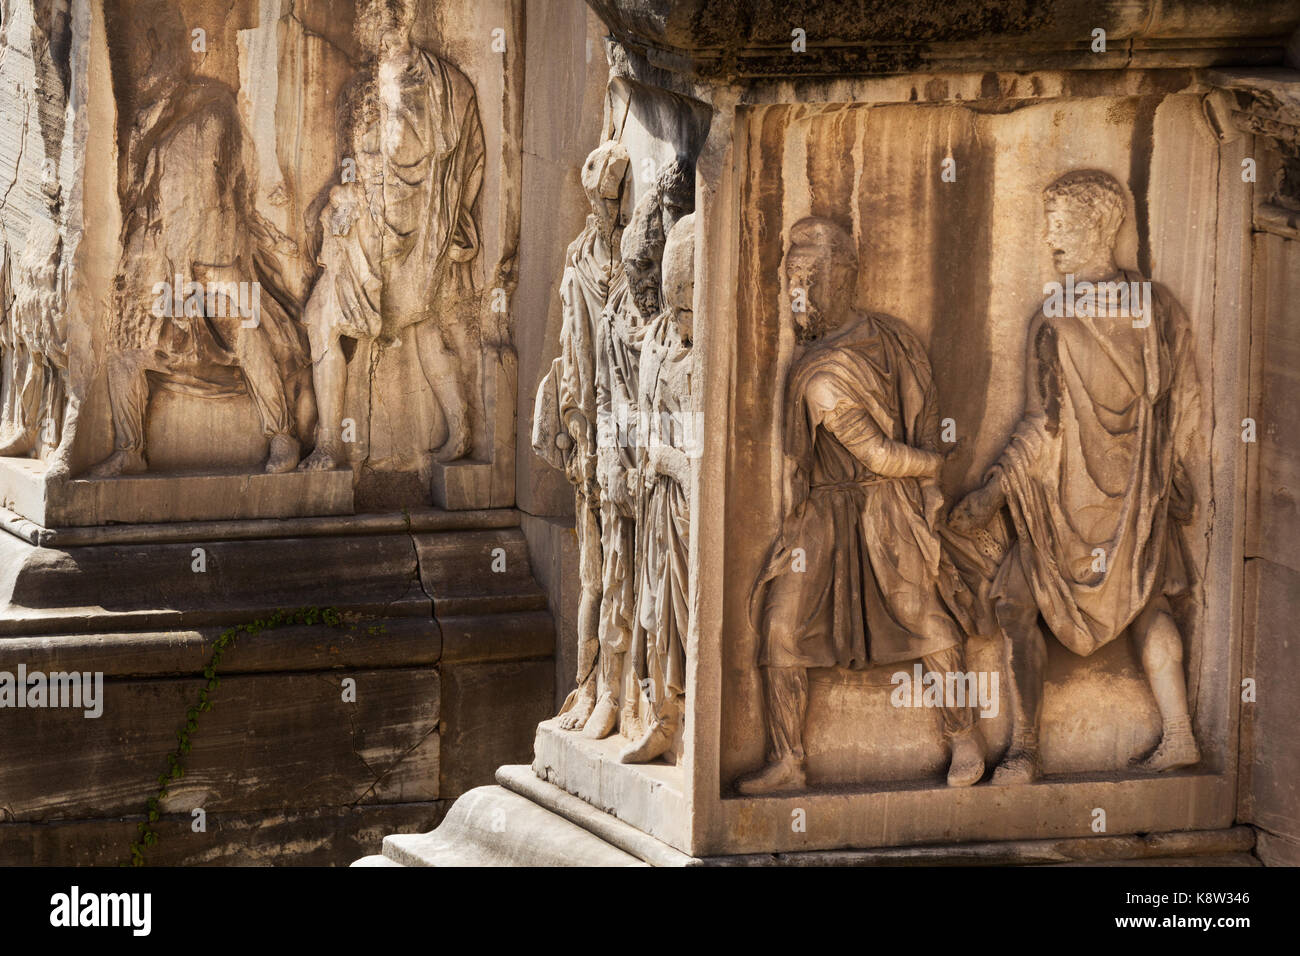 Reliefs of the Parthian prisoners of war - Arch of Septimius Severus - Rome - Stock Image